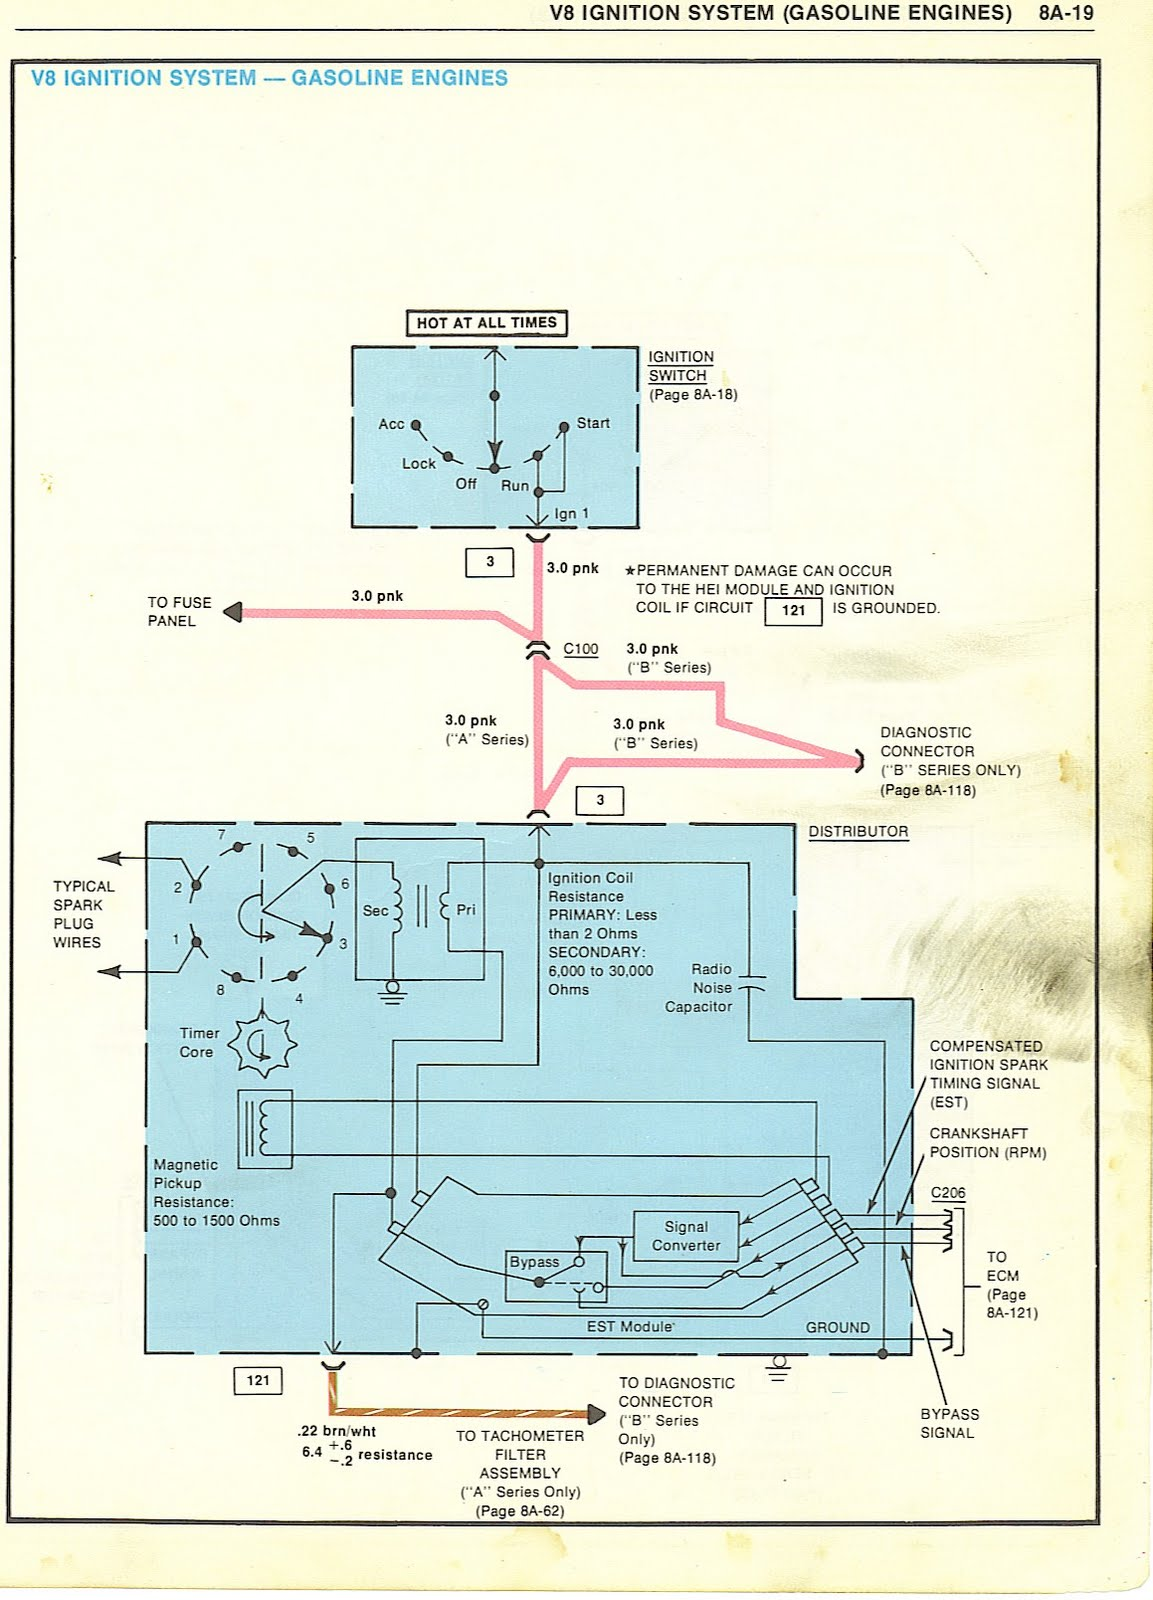 v8-ignition-system-malibu-wiring-diagram-chevrolet Oldsmobile Ignition Wiring Diagram on lincoln wiring diagrams, austin healey wiring diagrams, delorean wiring diagrams, triumph wiring diagrams, jeep wiring diagrams, excalibur wiring diagrams, gm wiring diagrams, studebaker wiring diagrams, imperial wiring diagrams, gem wiring diagrams, ktm wiring diagrams, plymouth wiring diagrams, honda wiring diagrams, dodge wiring diagrams, alfa romeo wiring diagrams, viking wiring diagrams, international wiring diagrams, mitsubishi wiring diagrams, mini cooper wiring diagrams, chrysler wiring diagrams,